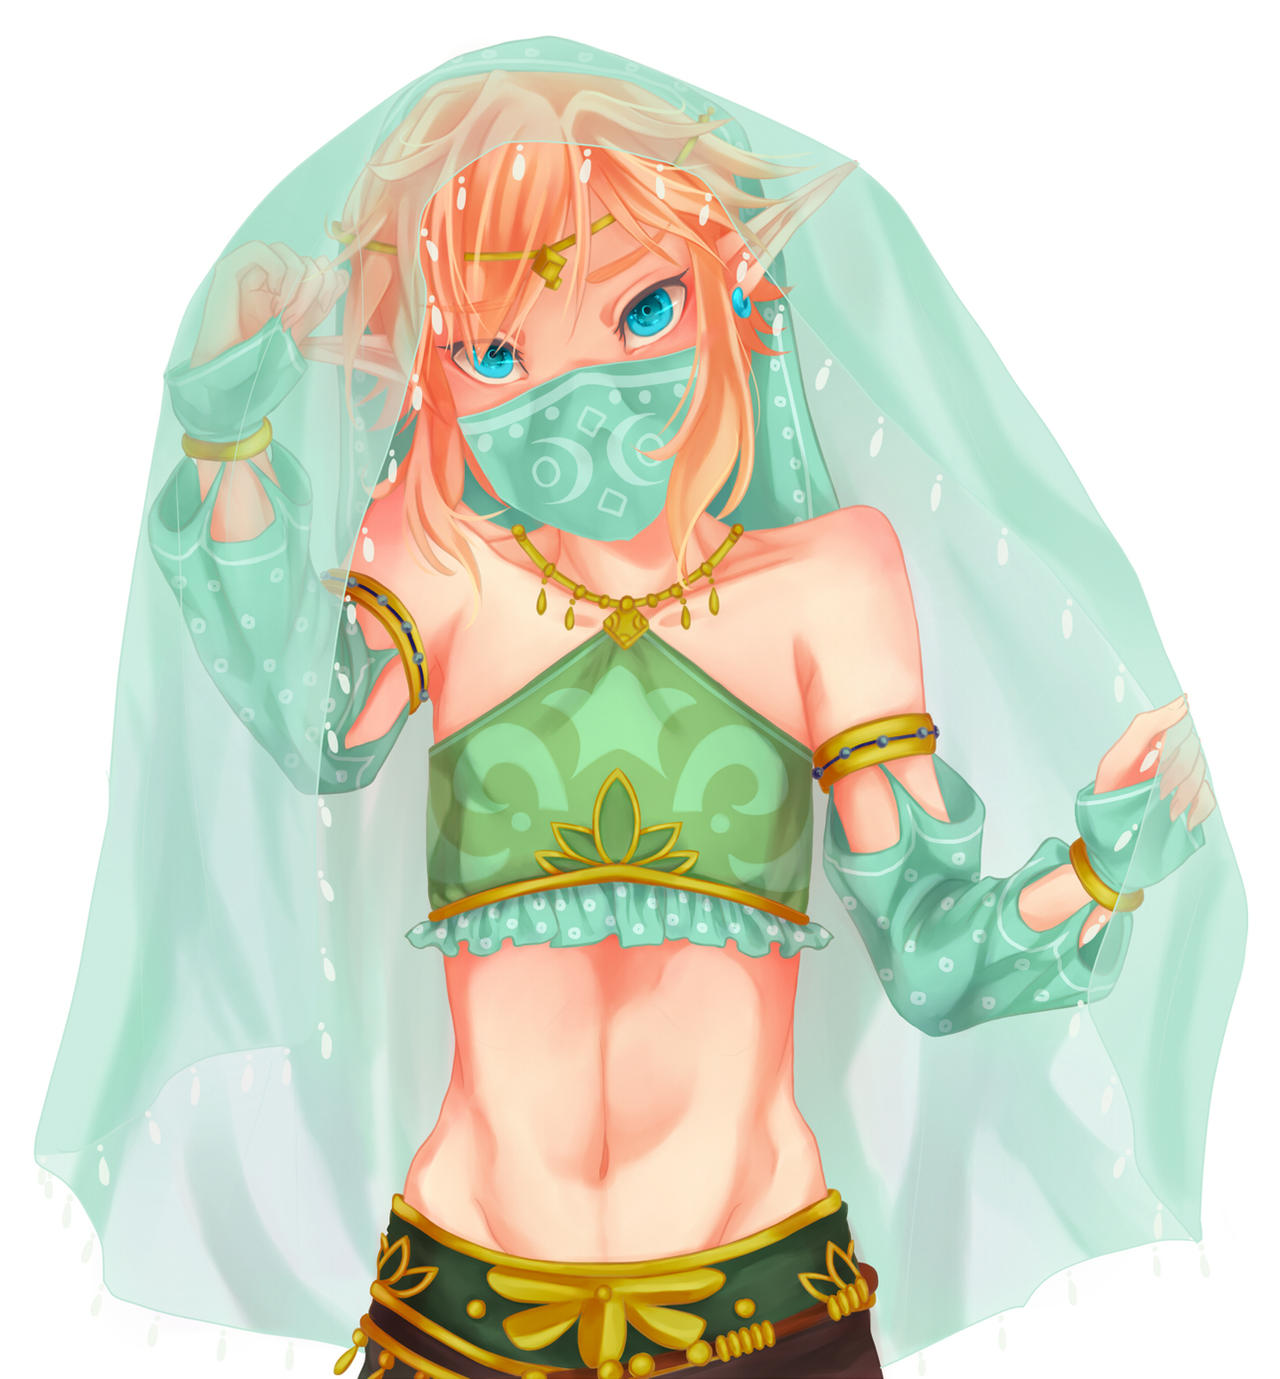 Gerudo Link by kaizerkon on DeviantArt